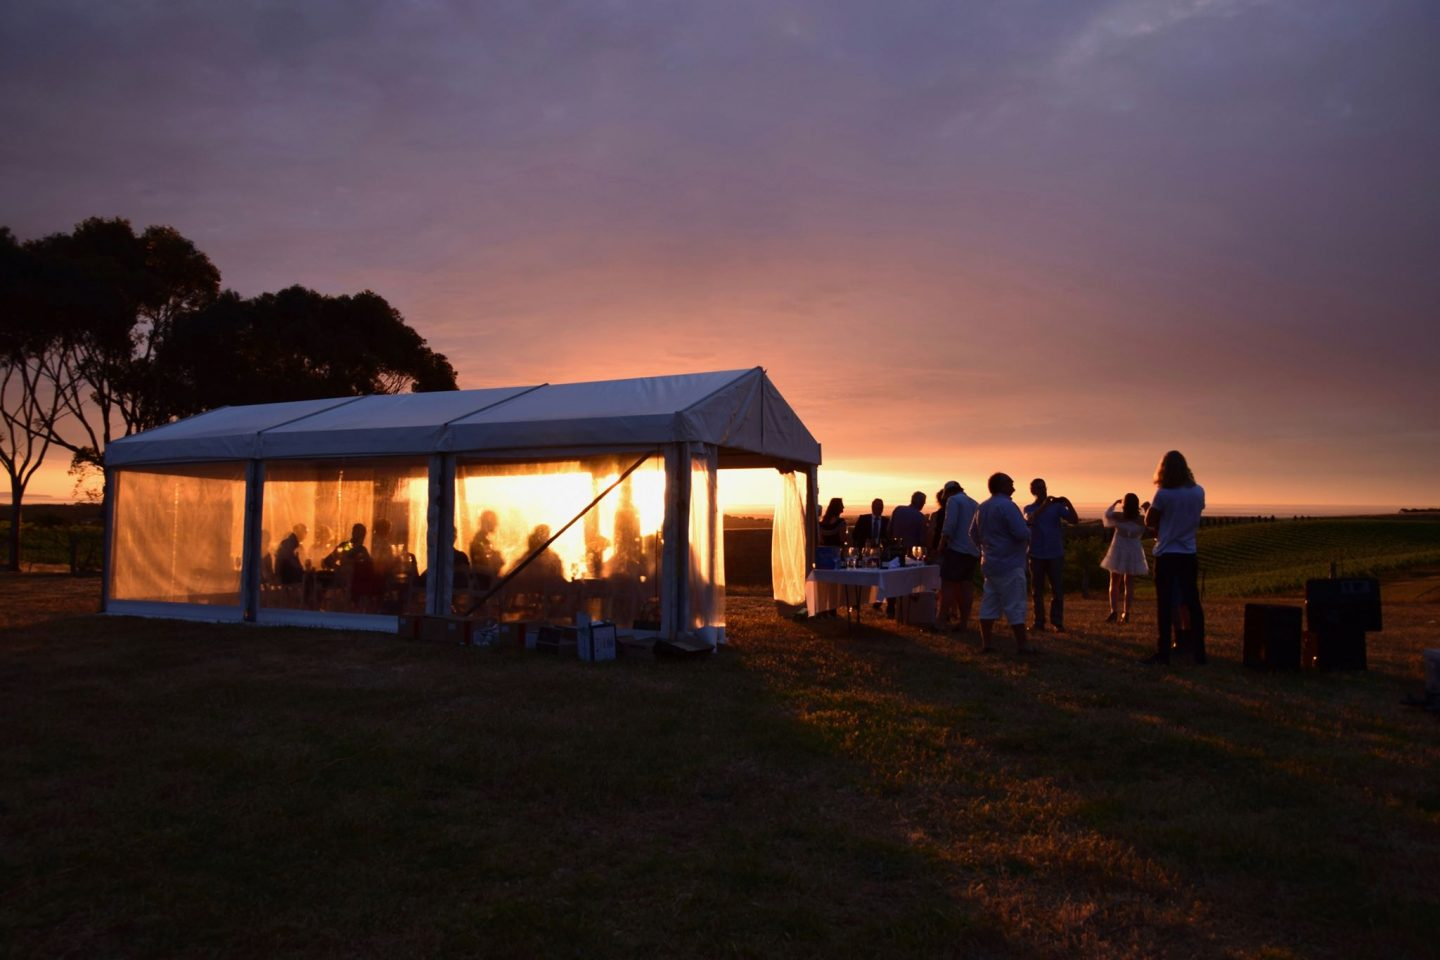 four-by-nine-meter-solid-white-vinyl-roof-pavilion-with-clear-walls-at-sunset-in-surrounding-area-of-Adelaide